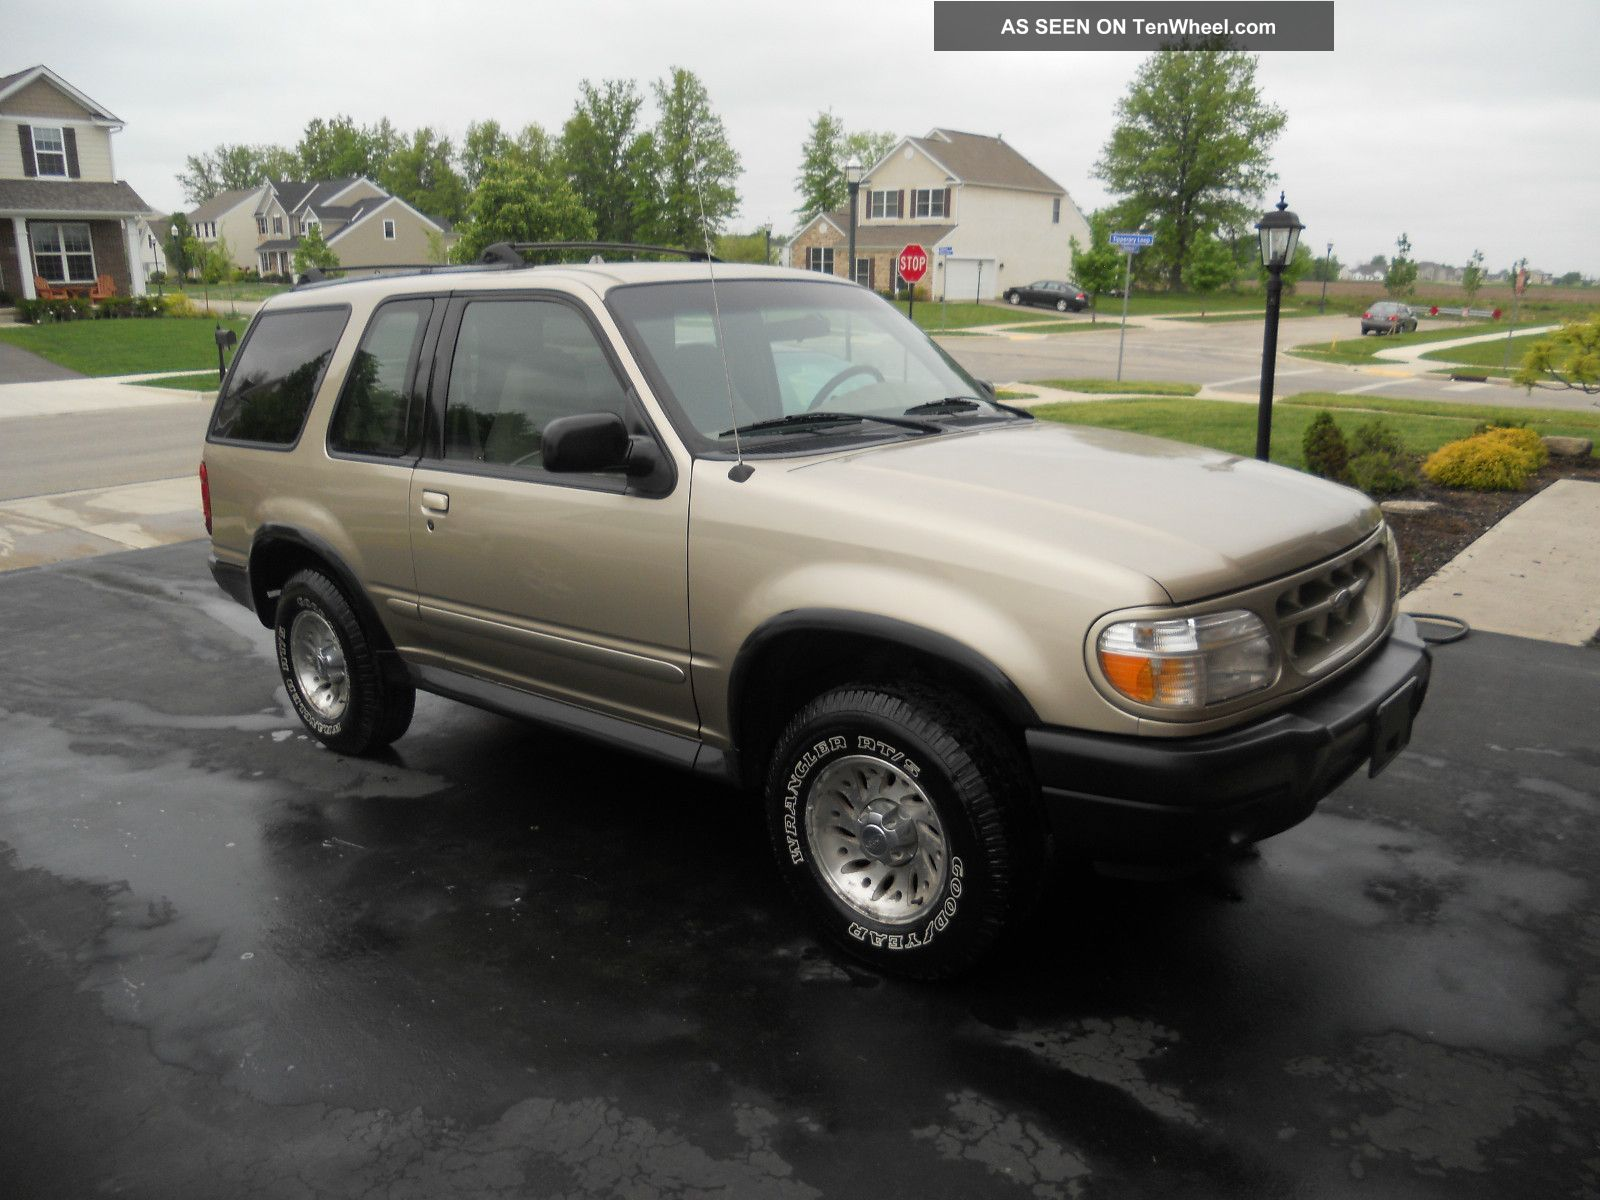 Ford Explorer 4.0 2000 photo - 11